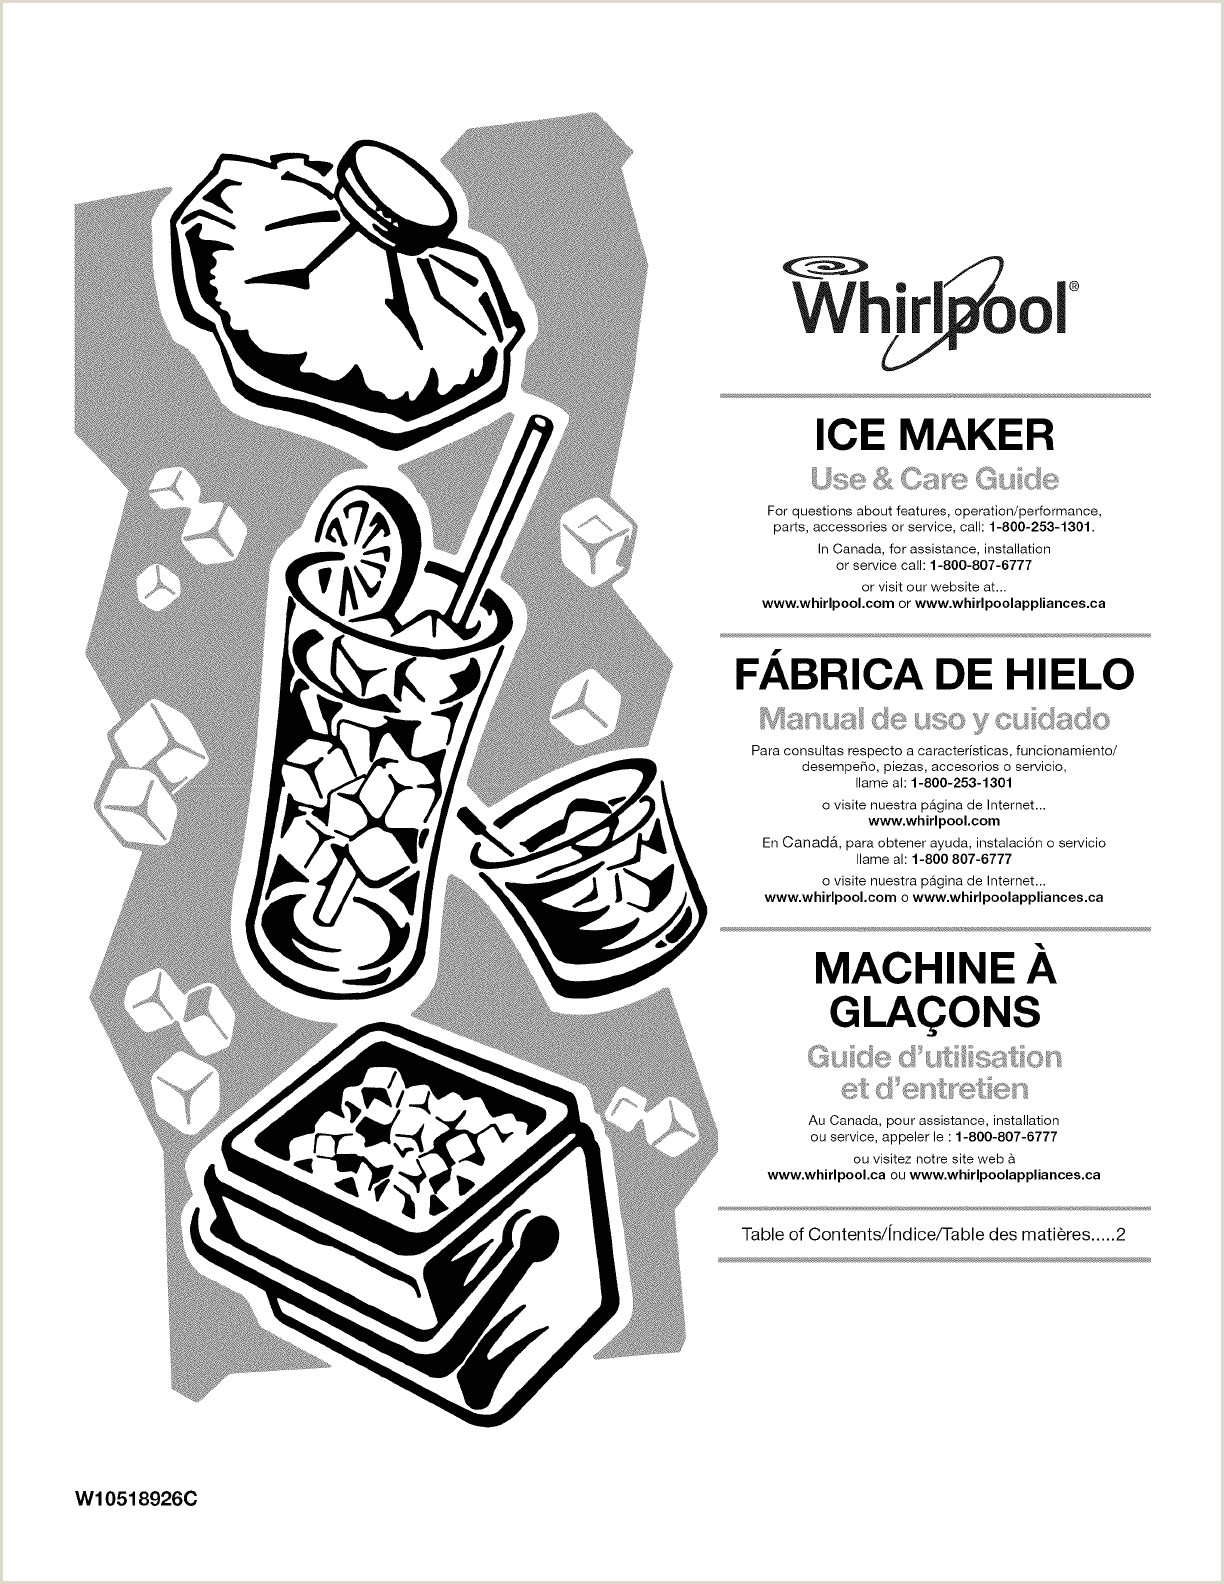 Whirlpool GI15PDXZS0 User Manual ICE MAKER Manuals And